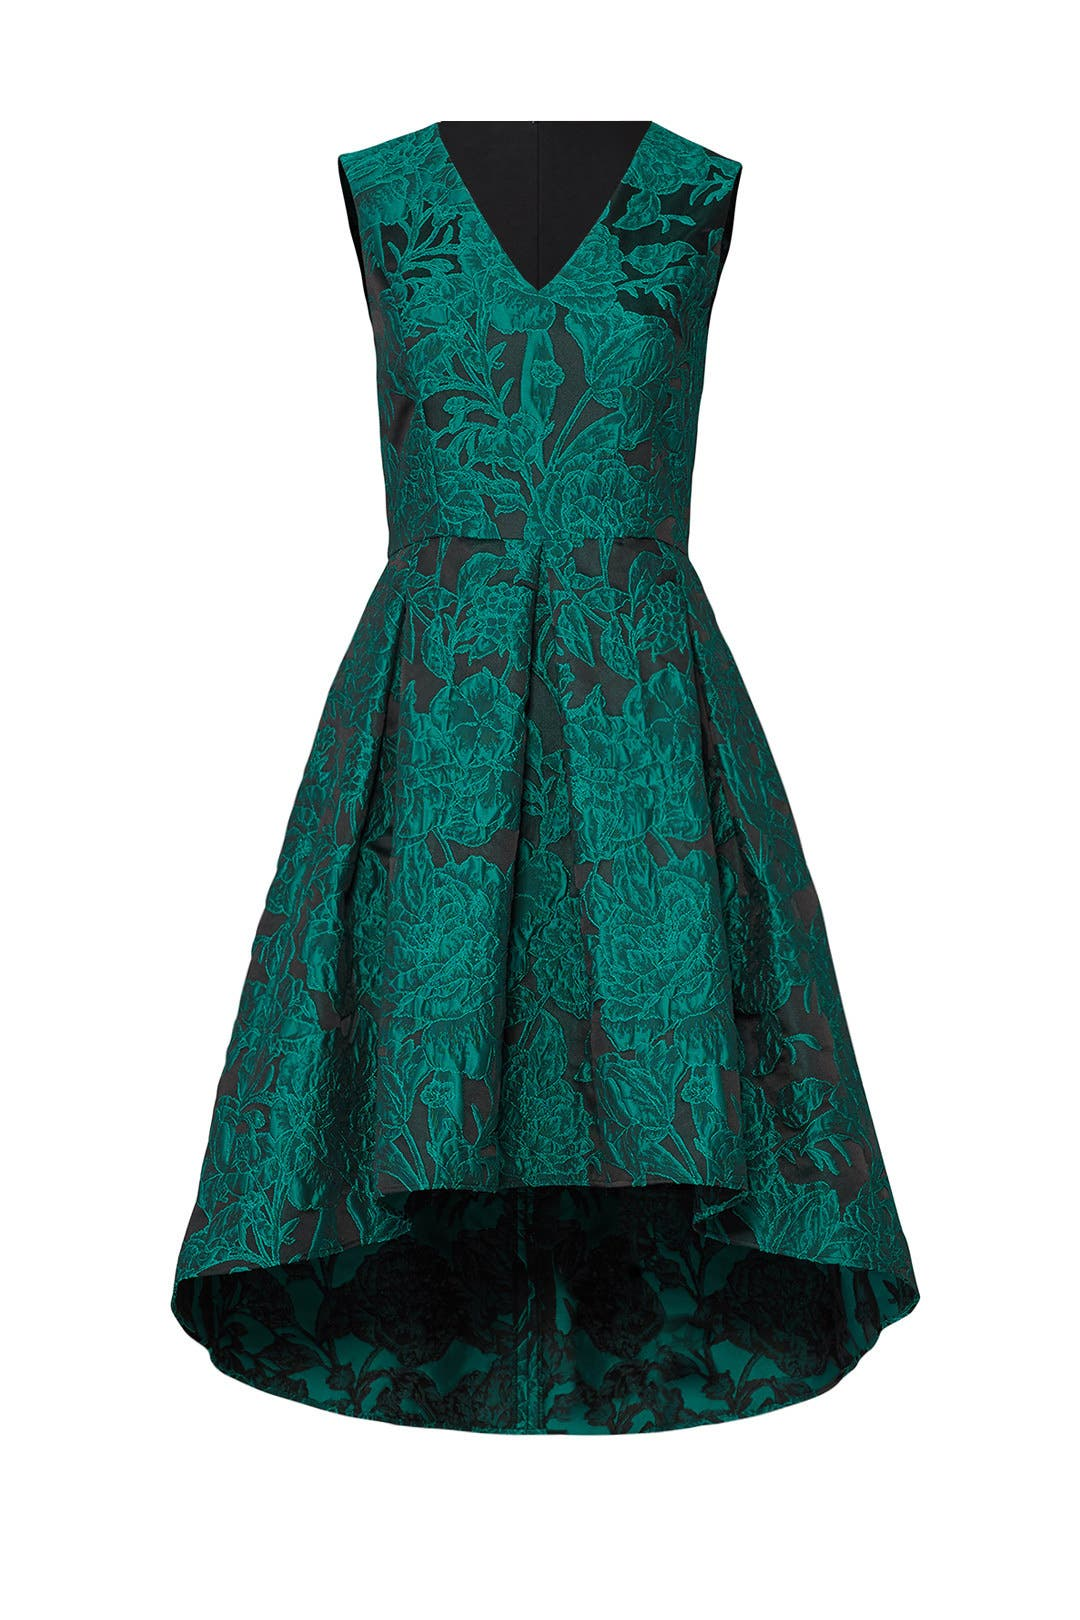 Green Gabi Dress by Slate & Willow for $30 - $35 | Rent the Runway